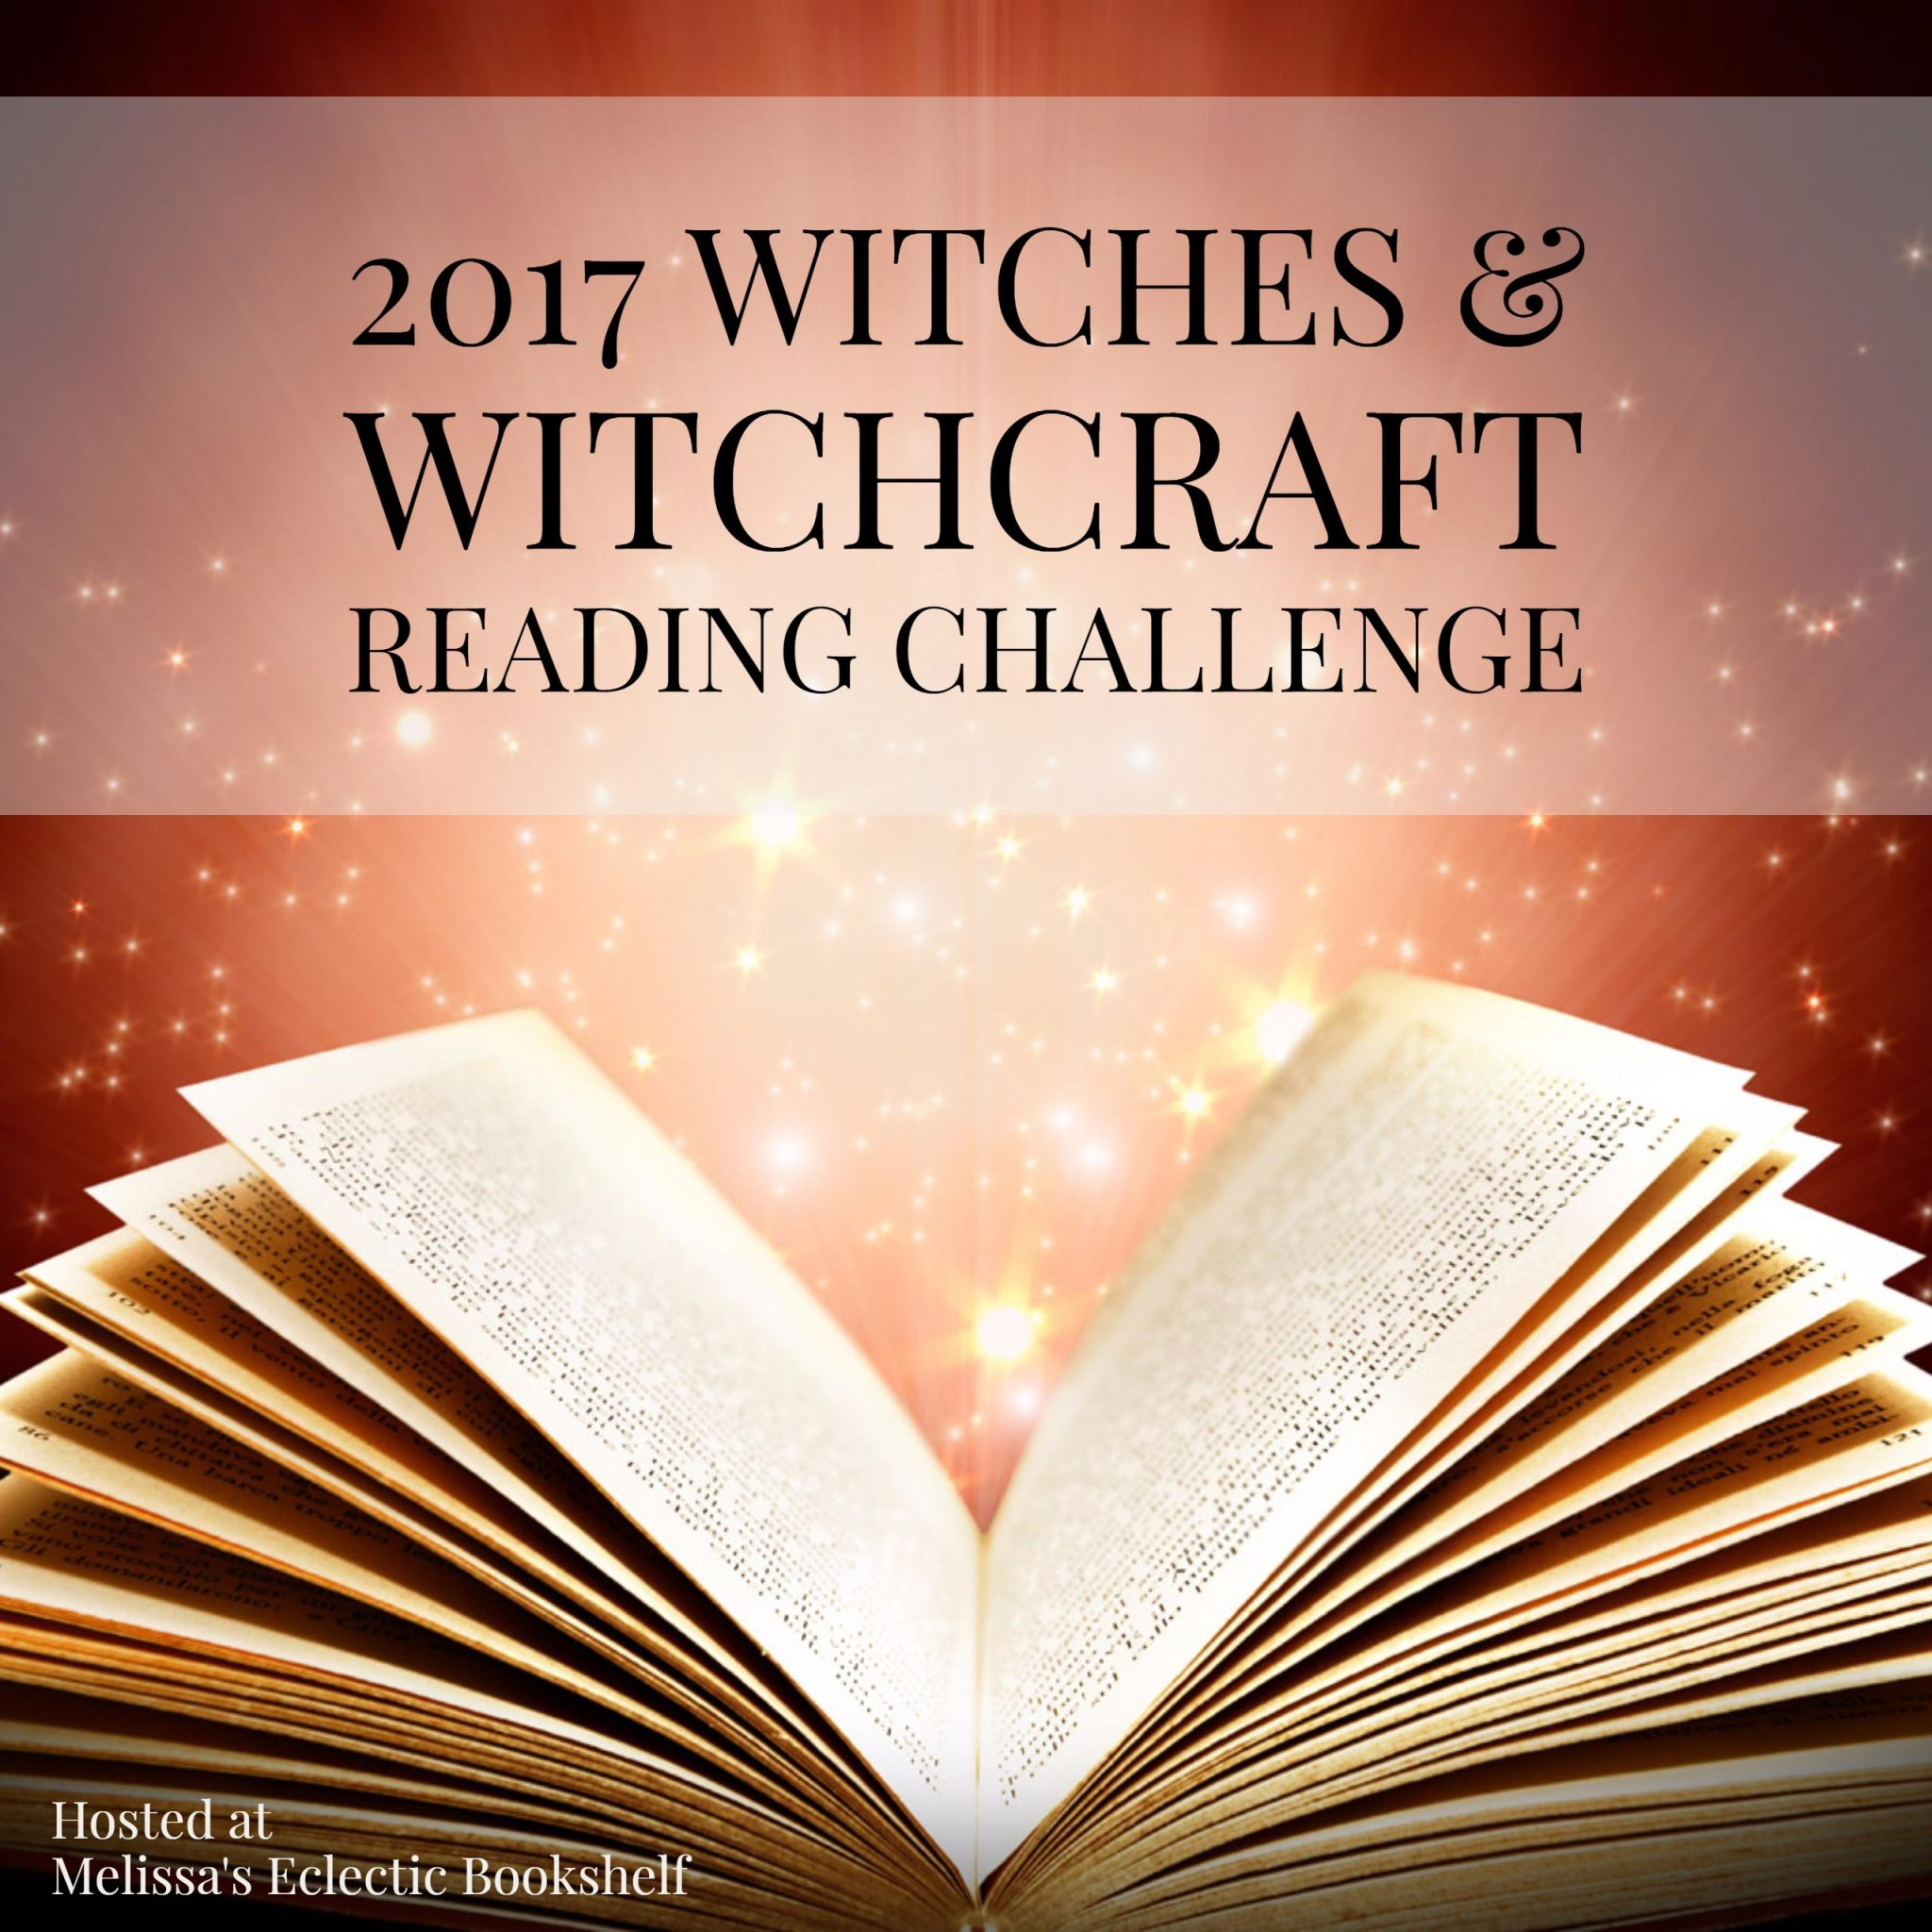 2017 Witches & Witchcraft Reading Challenge